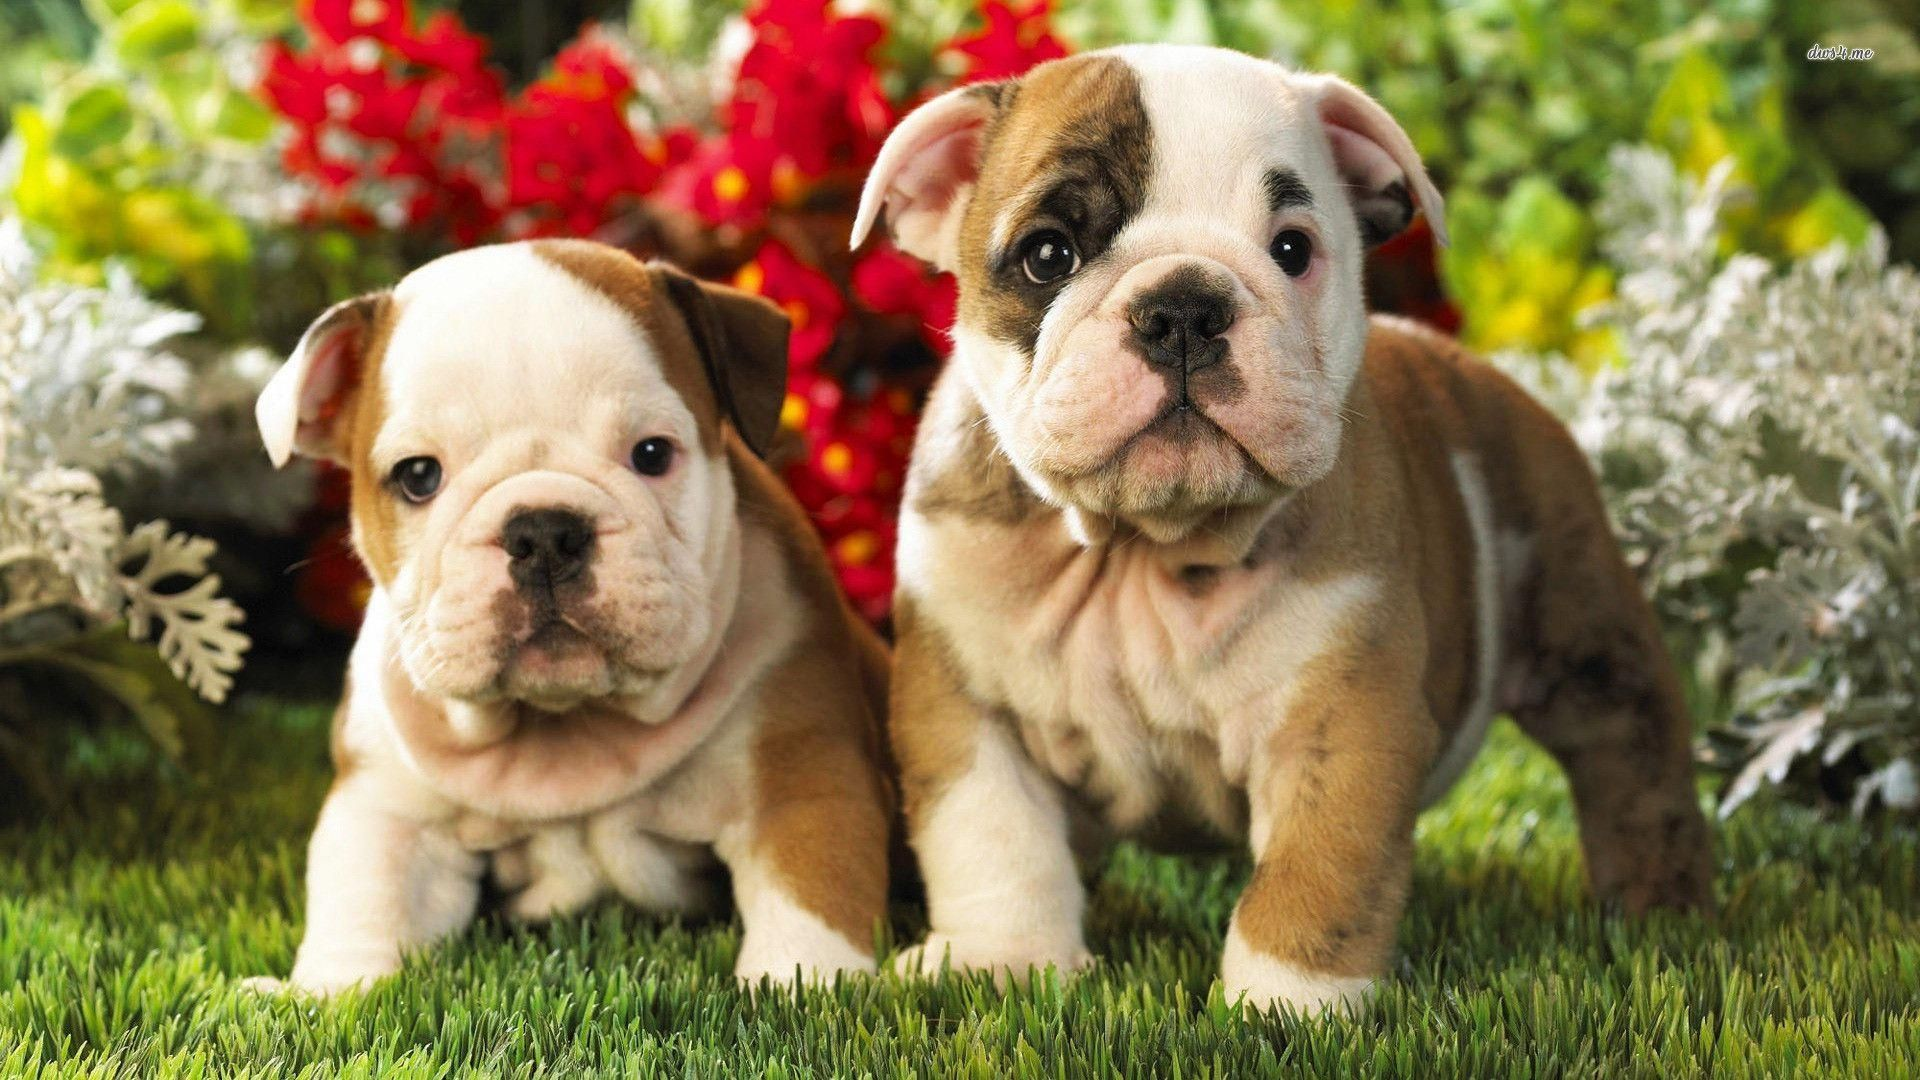 Puppies Free Hd Wallpapers And Backgrounds Download 6 English